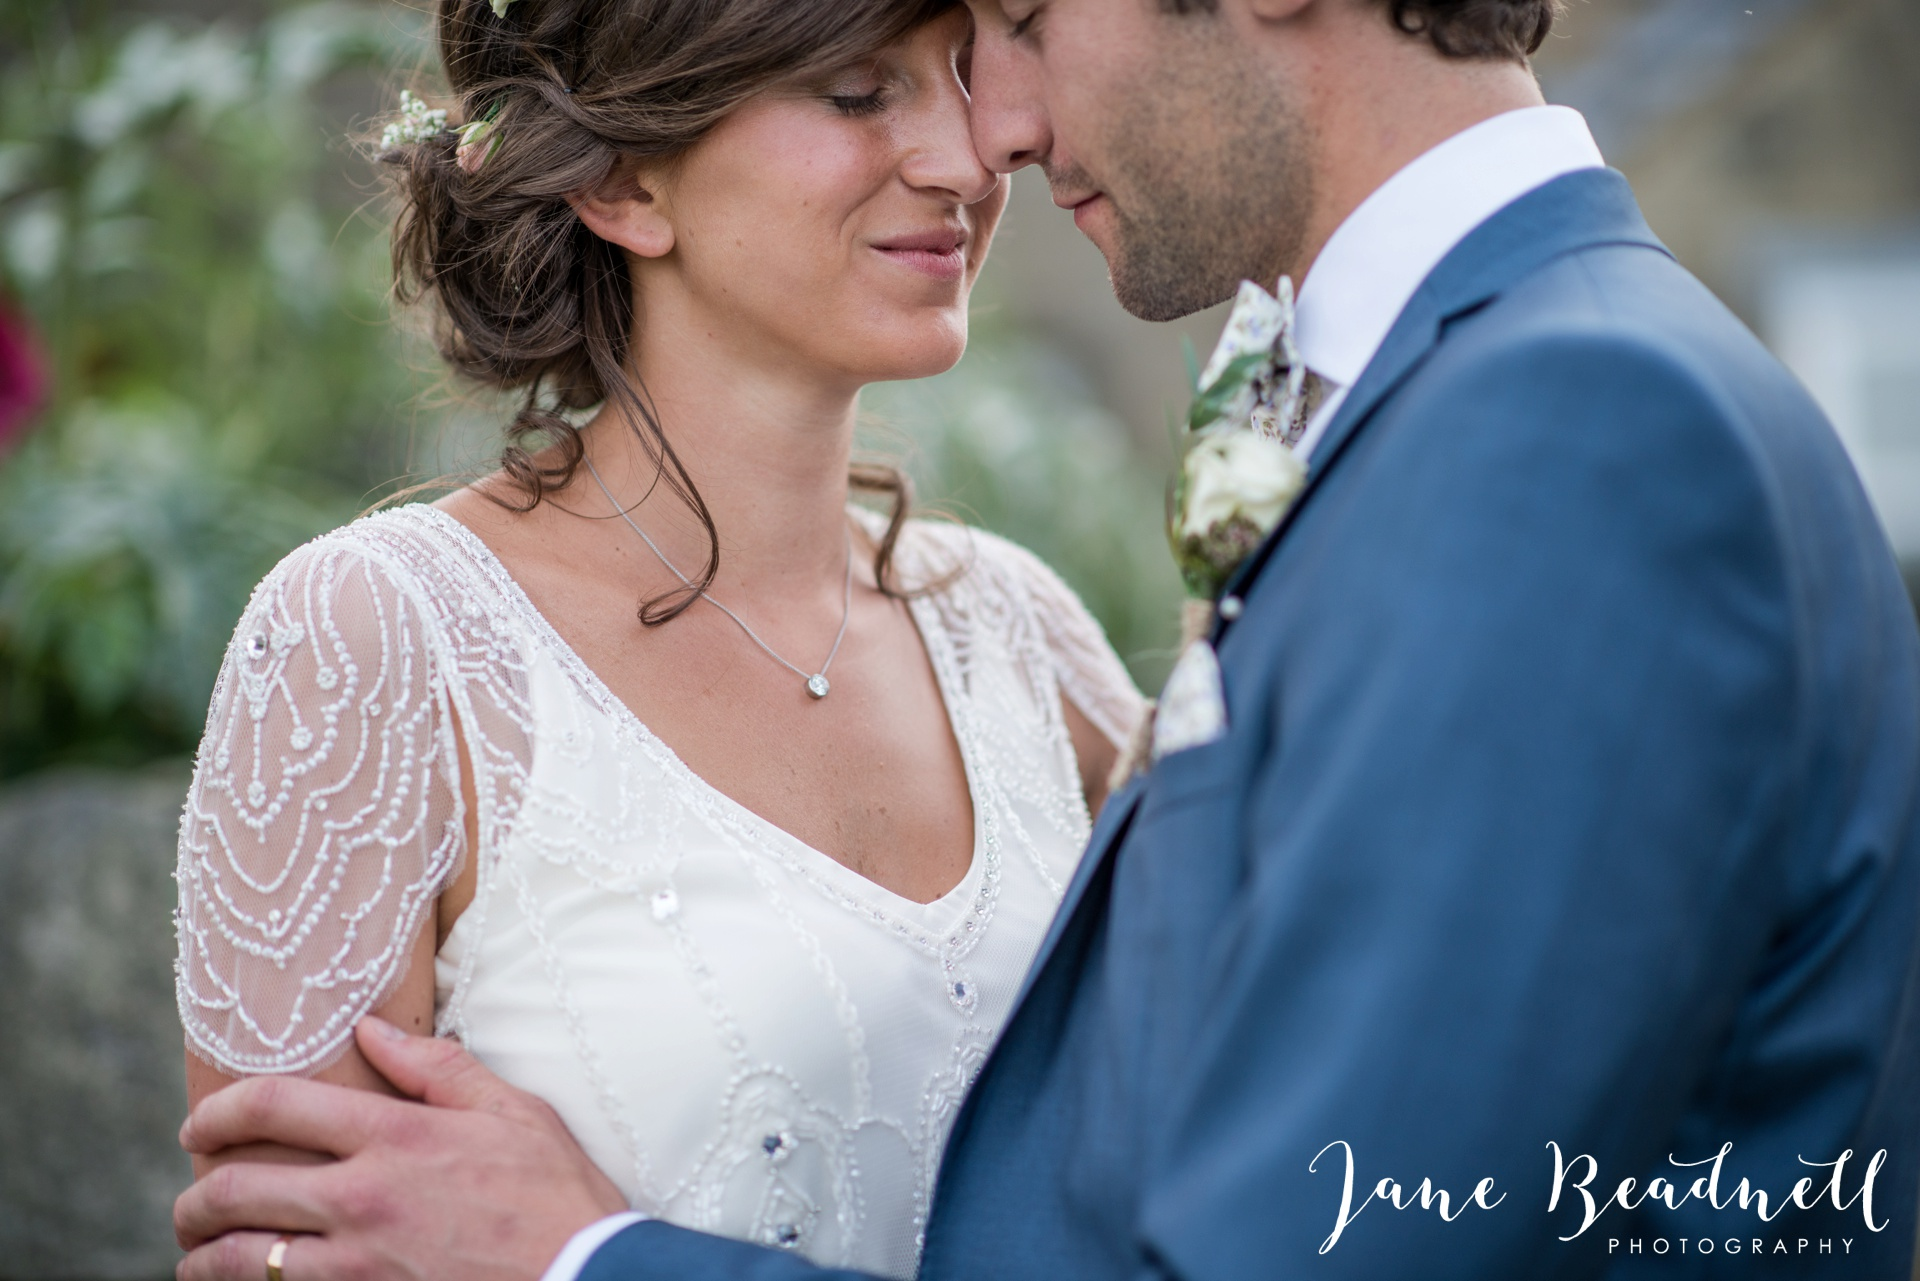 Jane Beadnell fine art wedding photographer Leeds_0141